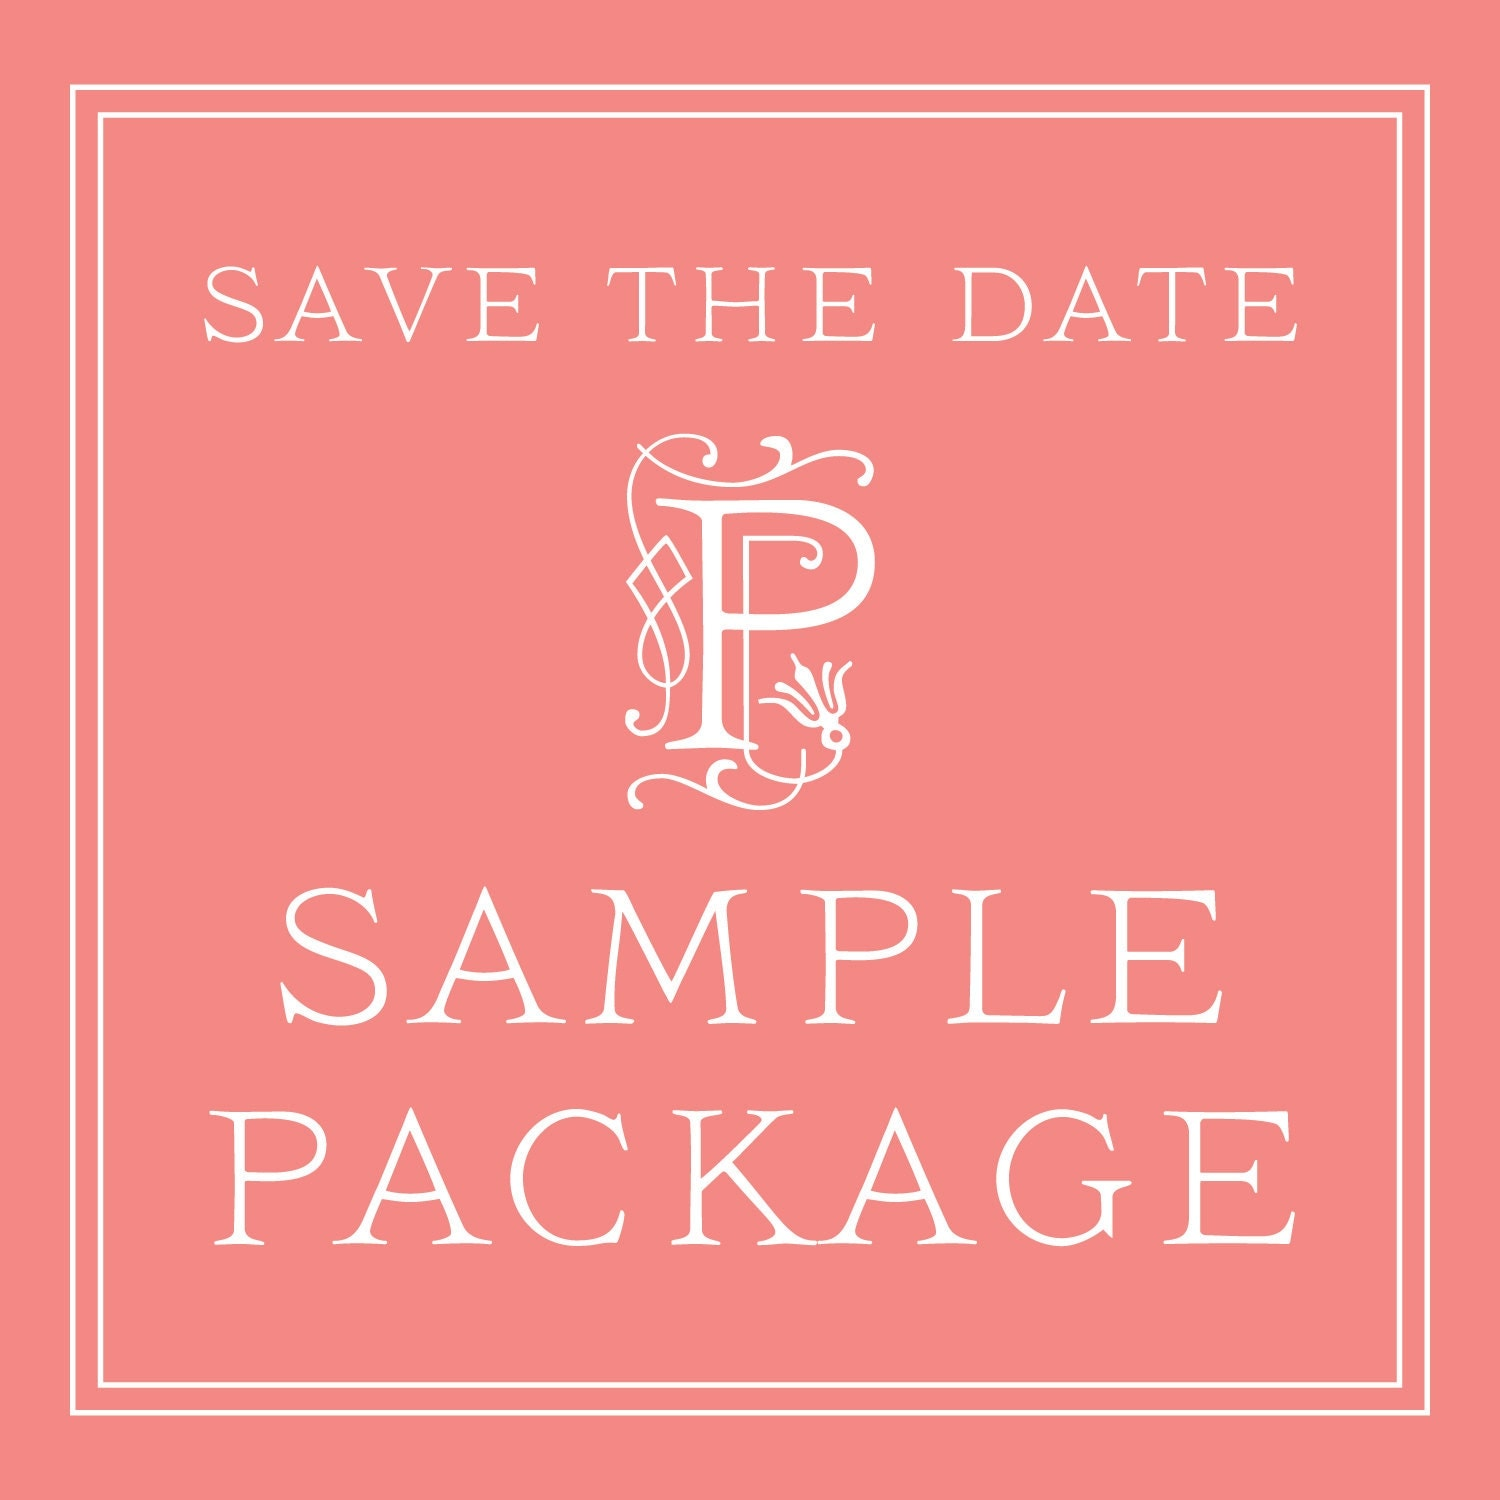 Wedding Invitations And Save The Dates Packages 017 - Wedding Invitations And Save The Dates Packages